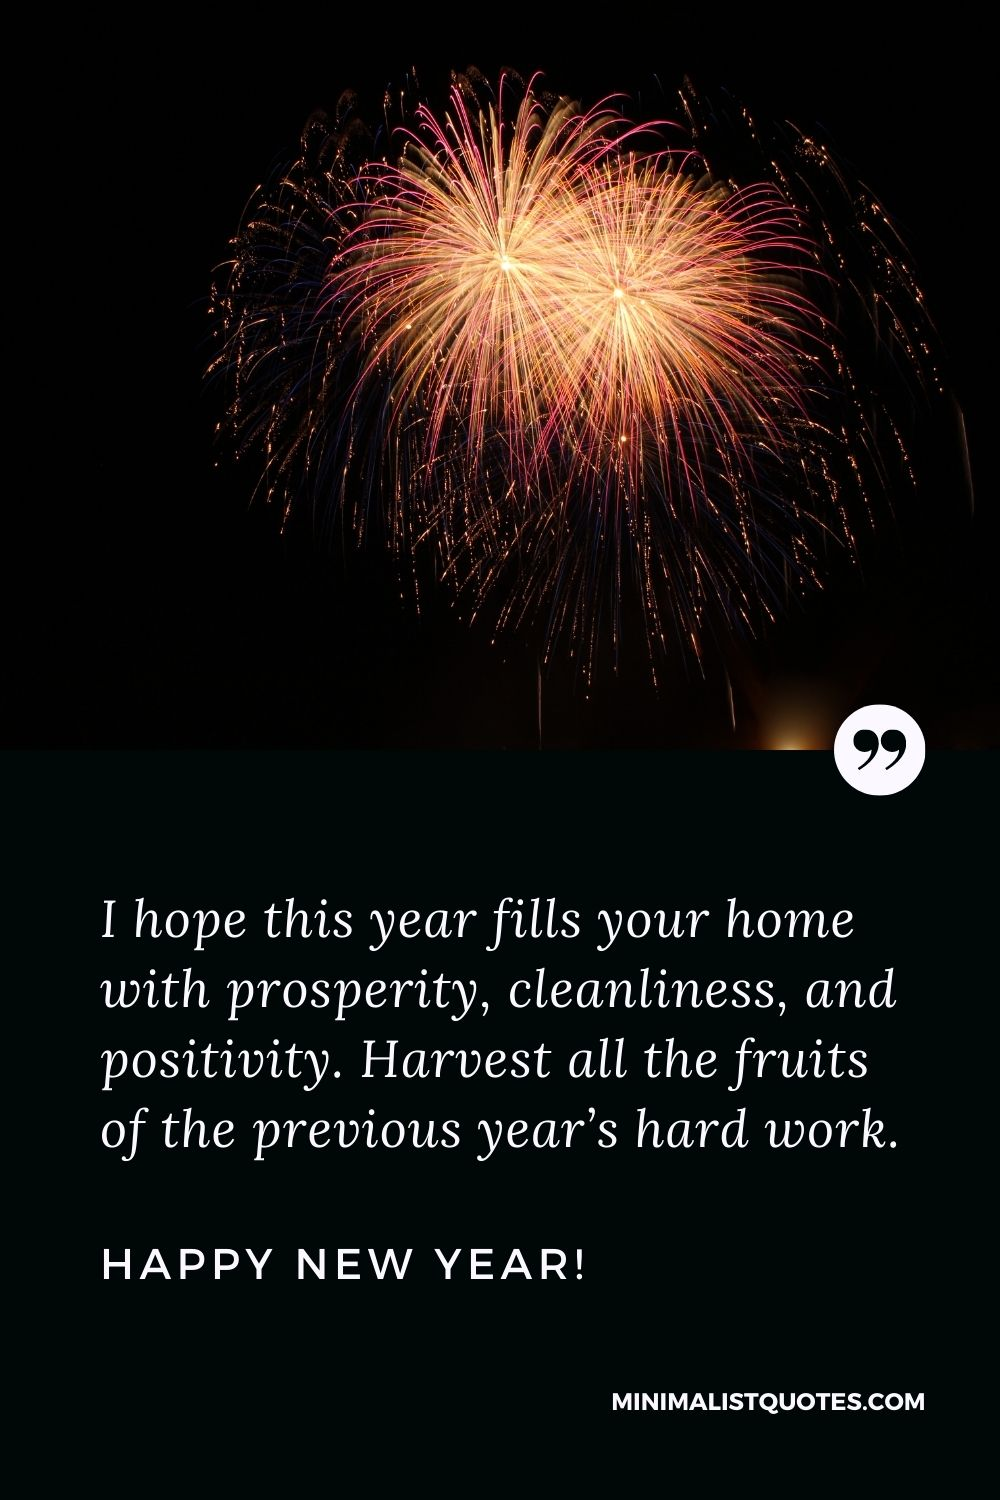 Happy new year wishes 2022: I hope this year fills your home with prosperity, cleanliness, and positivity. Harvest all the fruits of the previous year's hard work. Happy New Year!